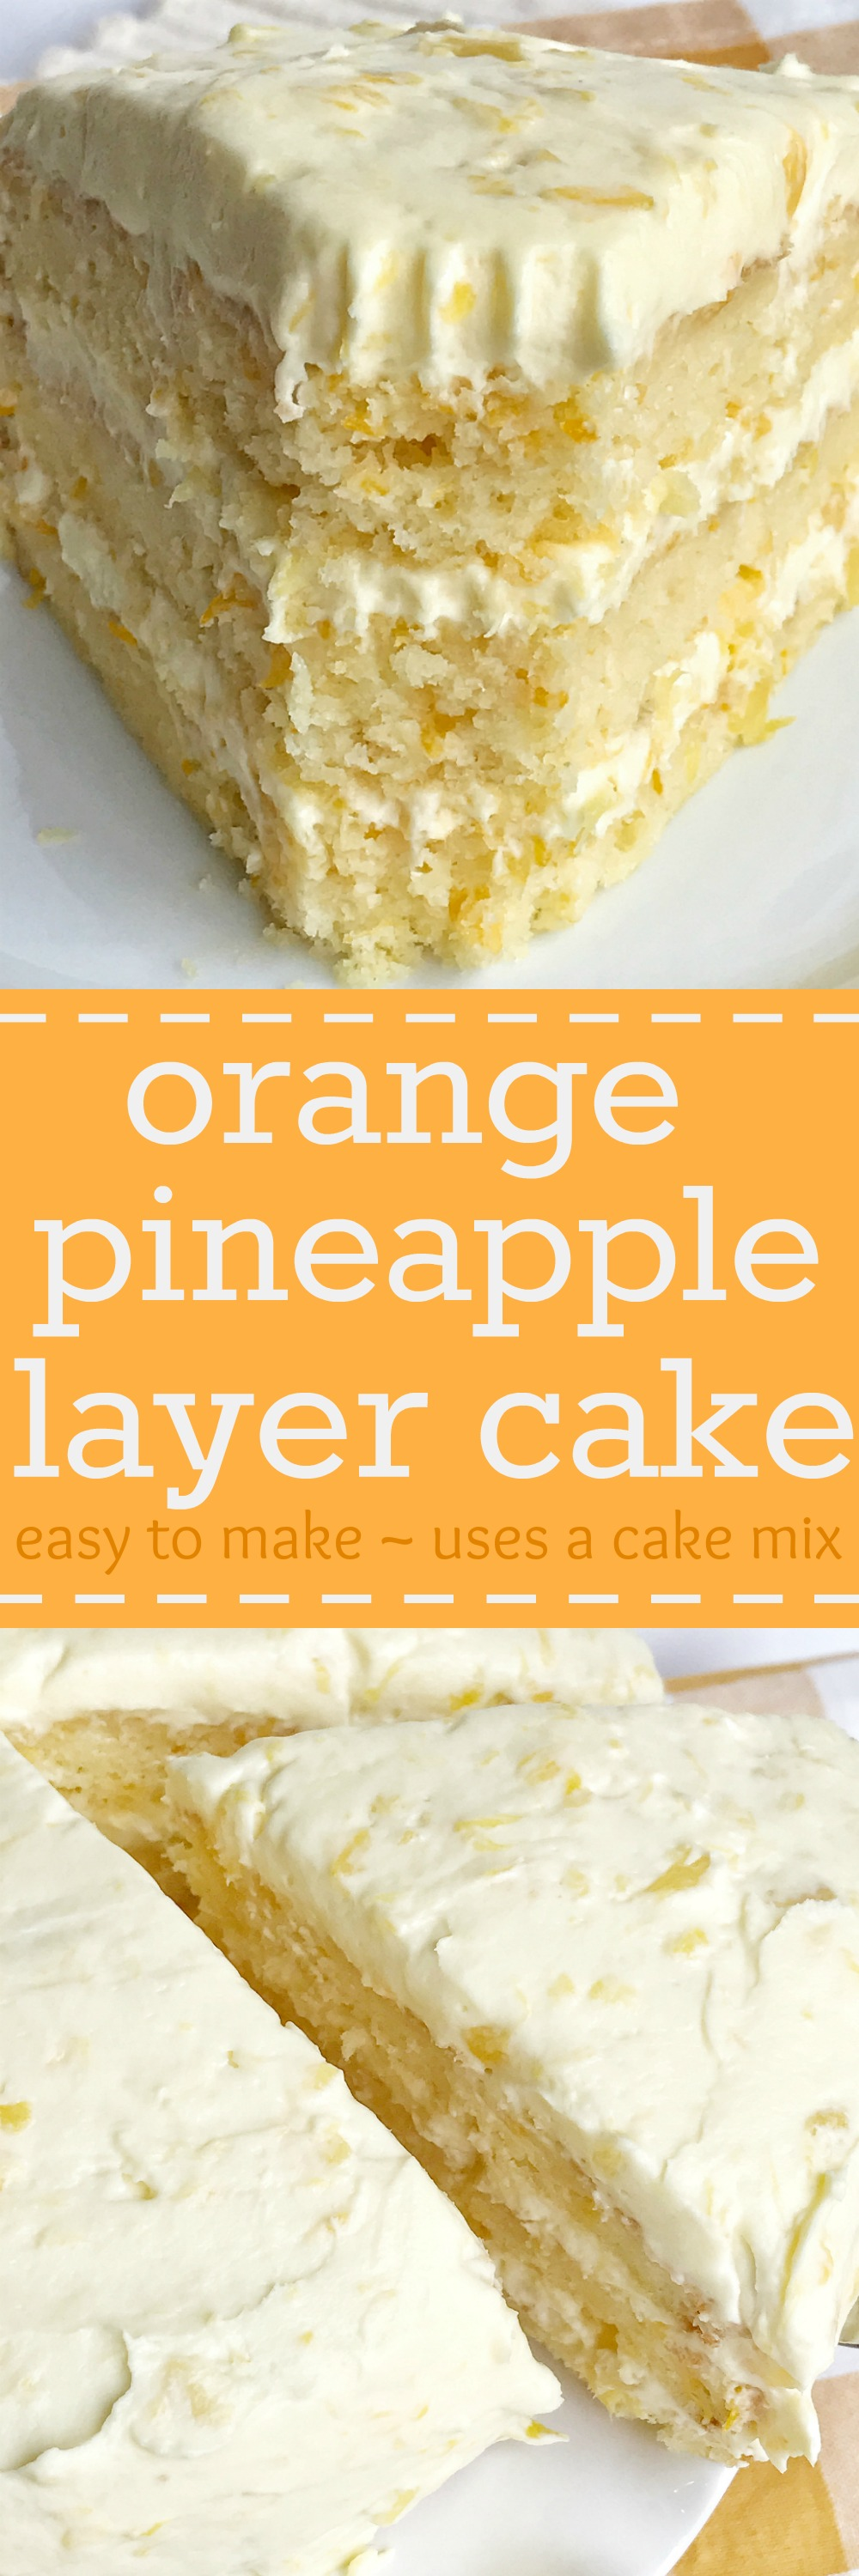 Carrot Cake Recipe With Pineapple Box